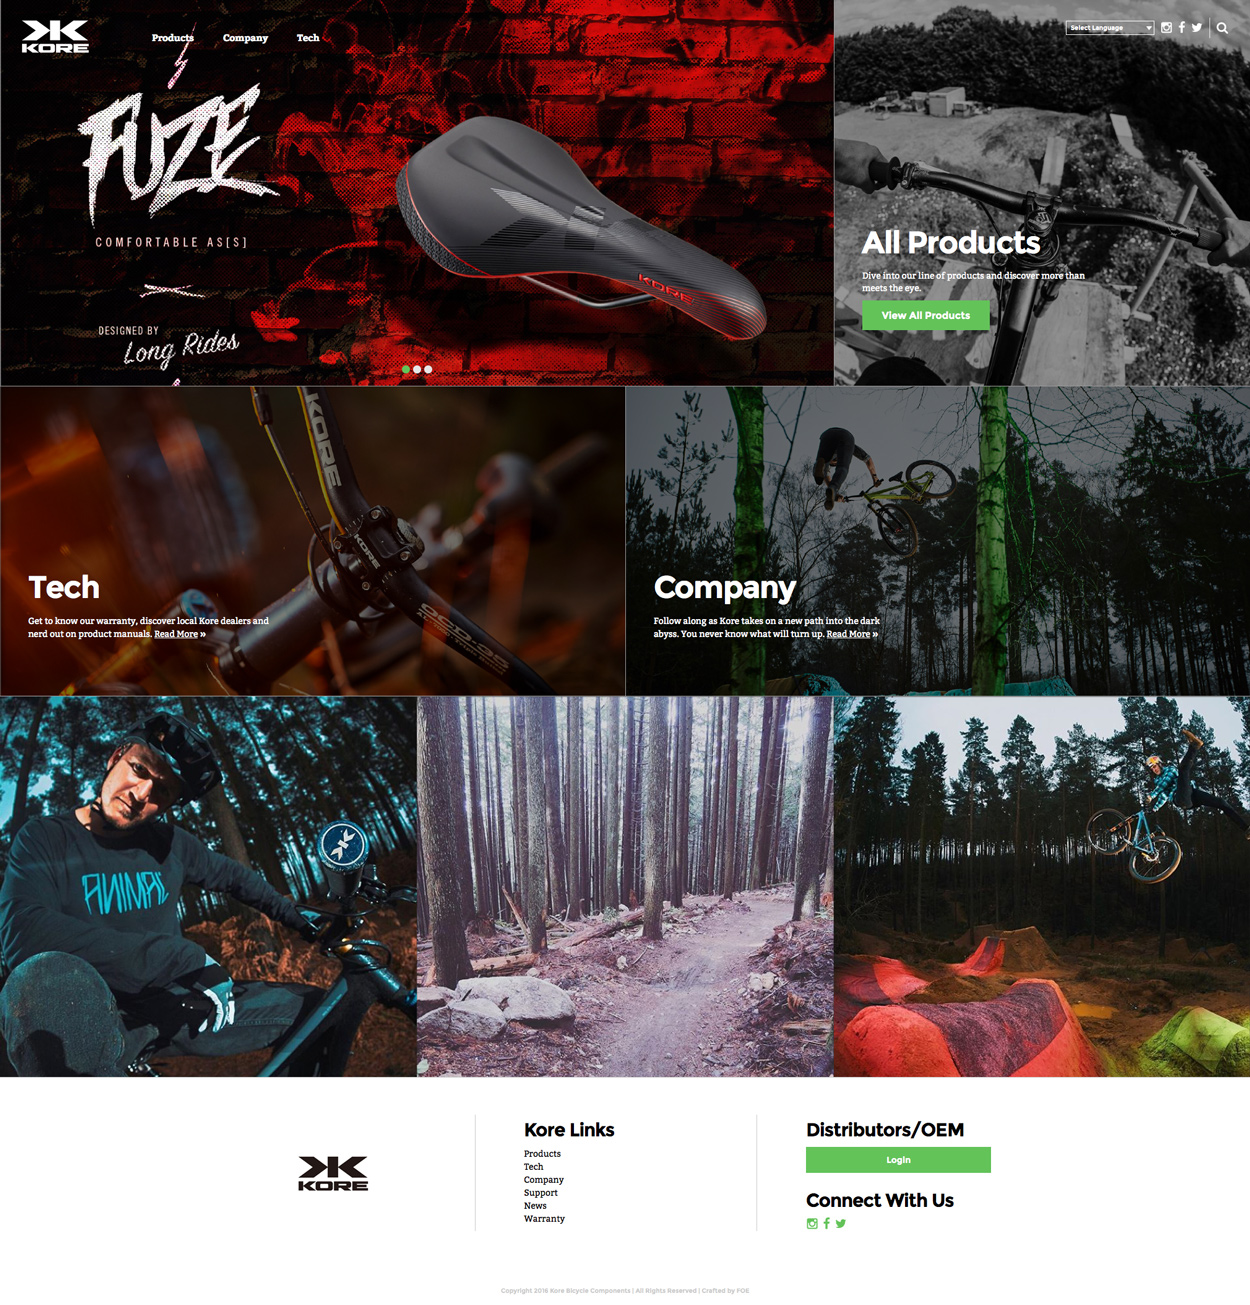 kore-mtb-product-web-design